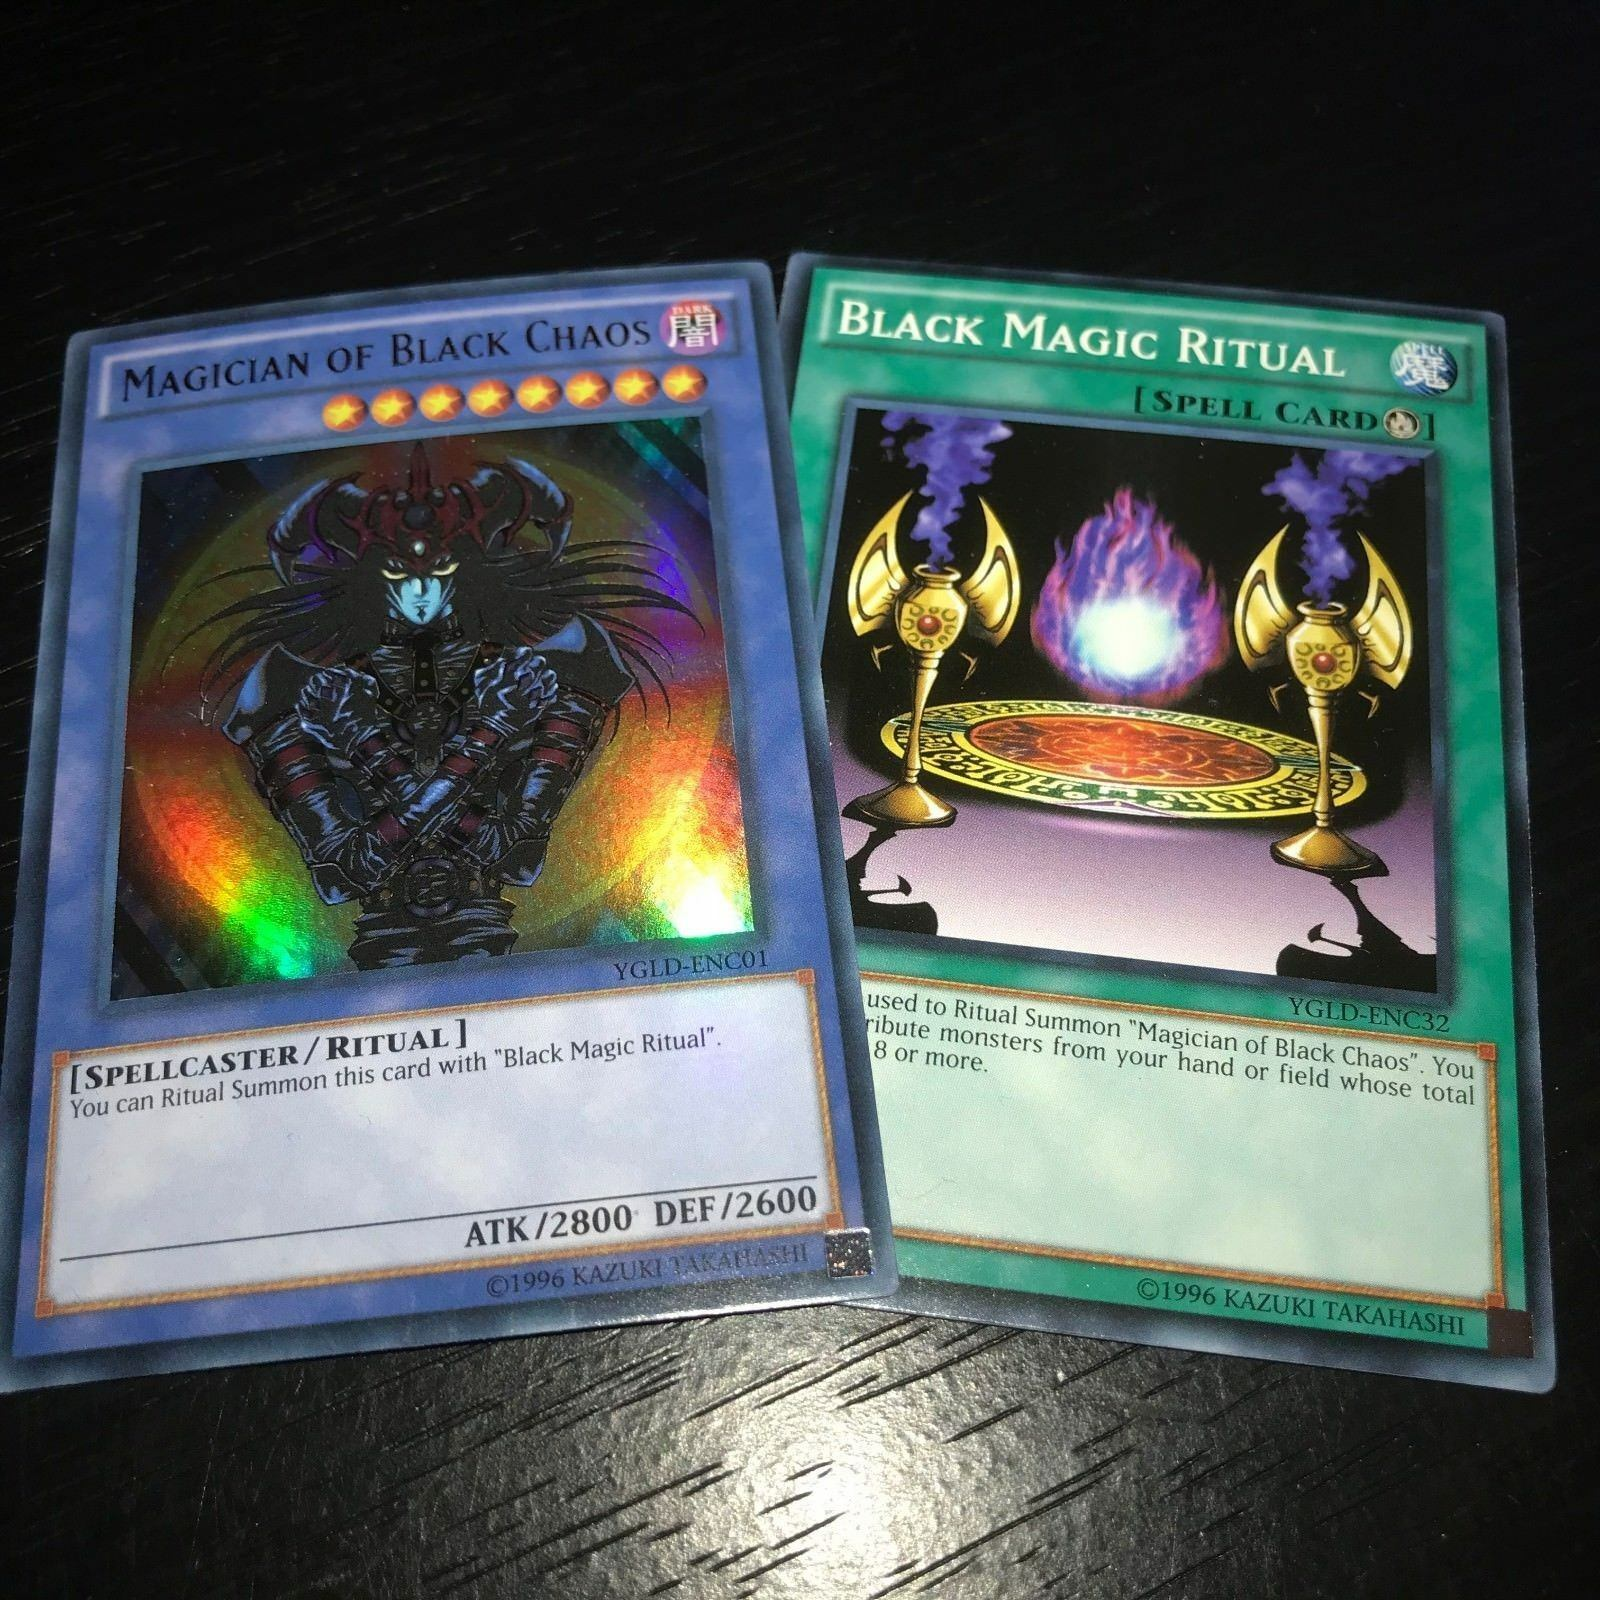 YUGIOH: MAGICIAN OF BLACK CHAOS BLACK MAGIC RITUAL - YGLD 2 CARD SET NM